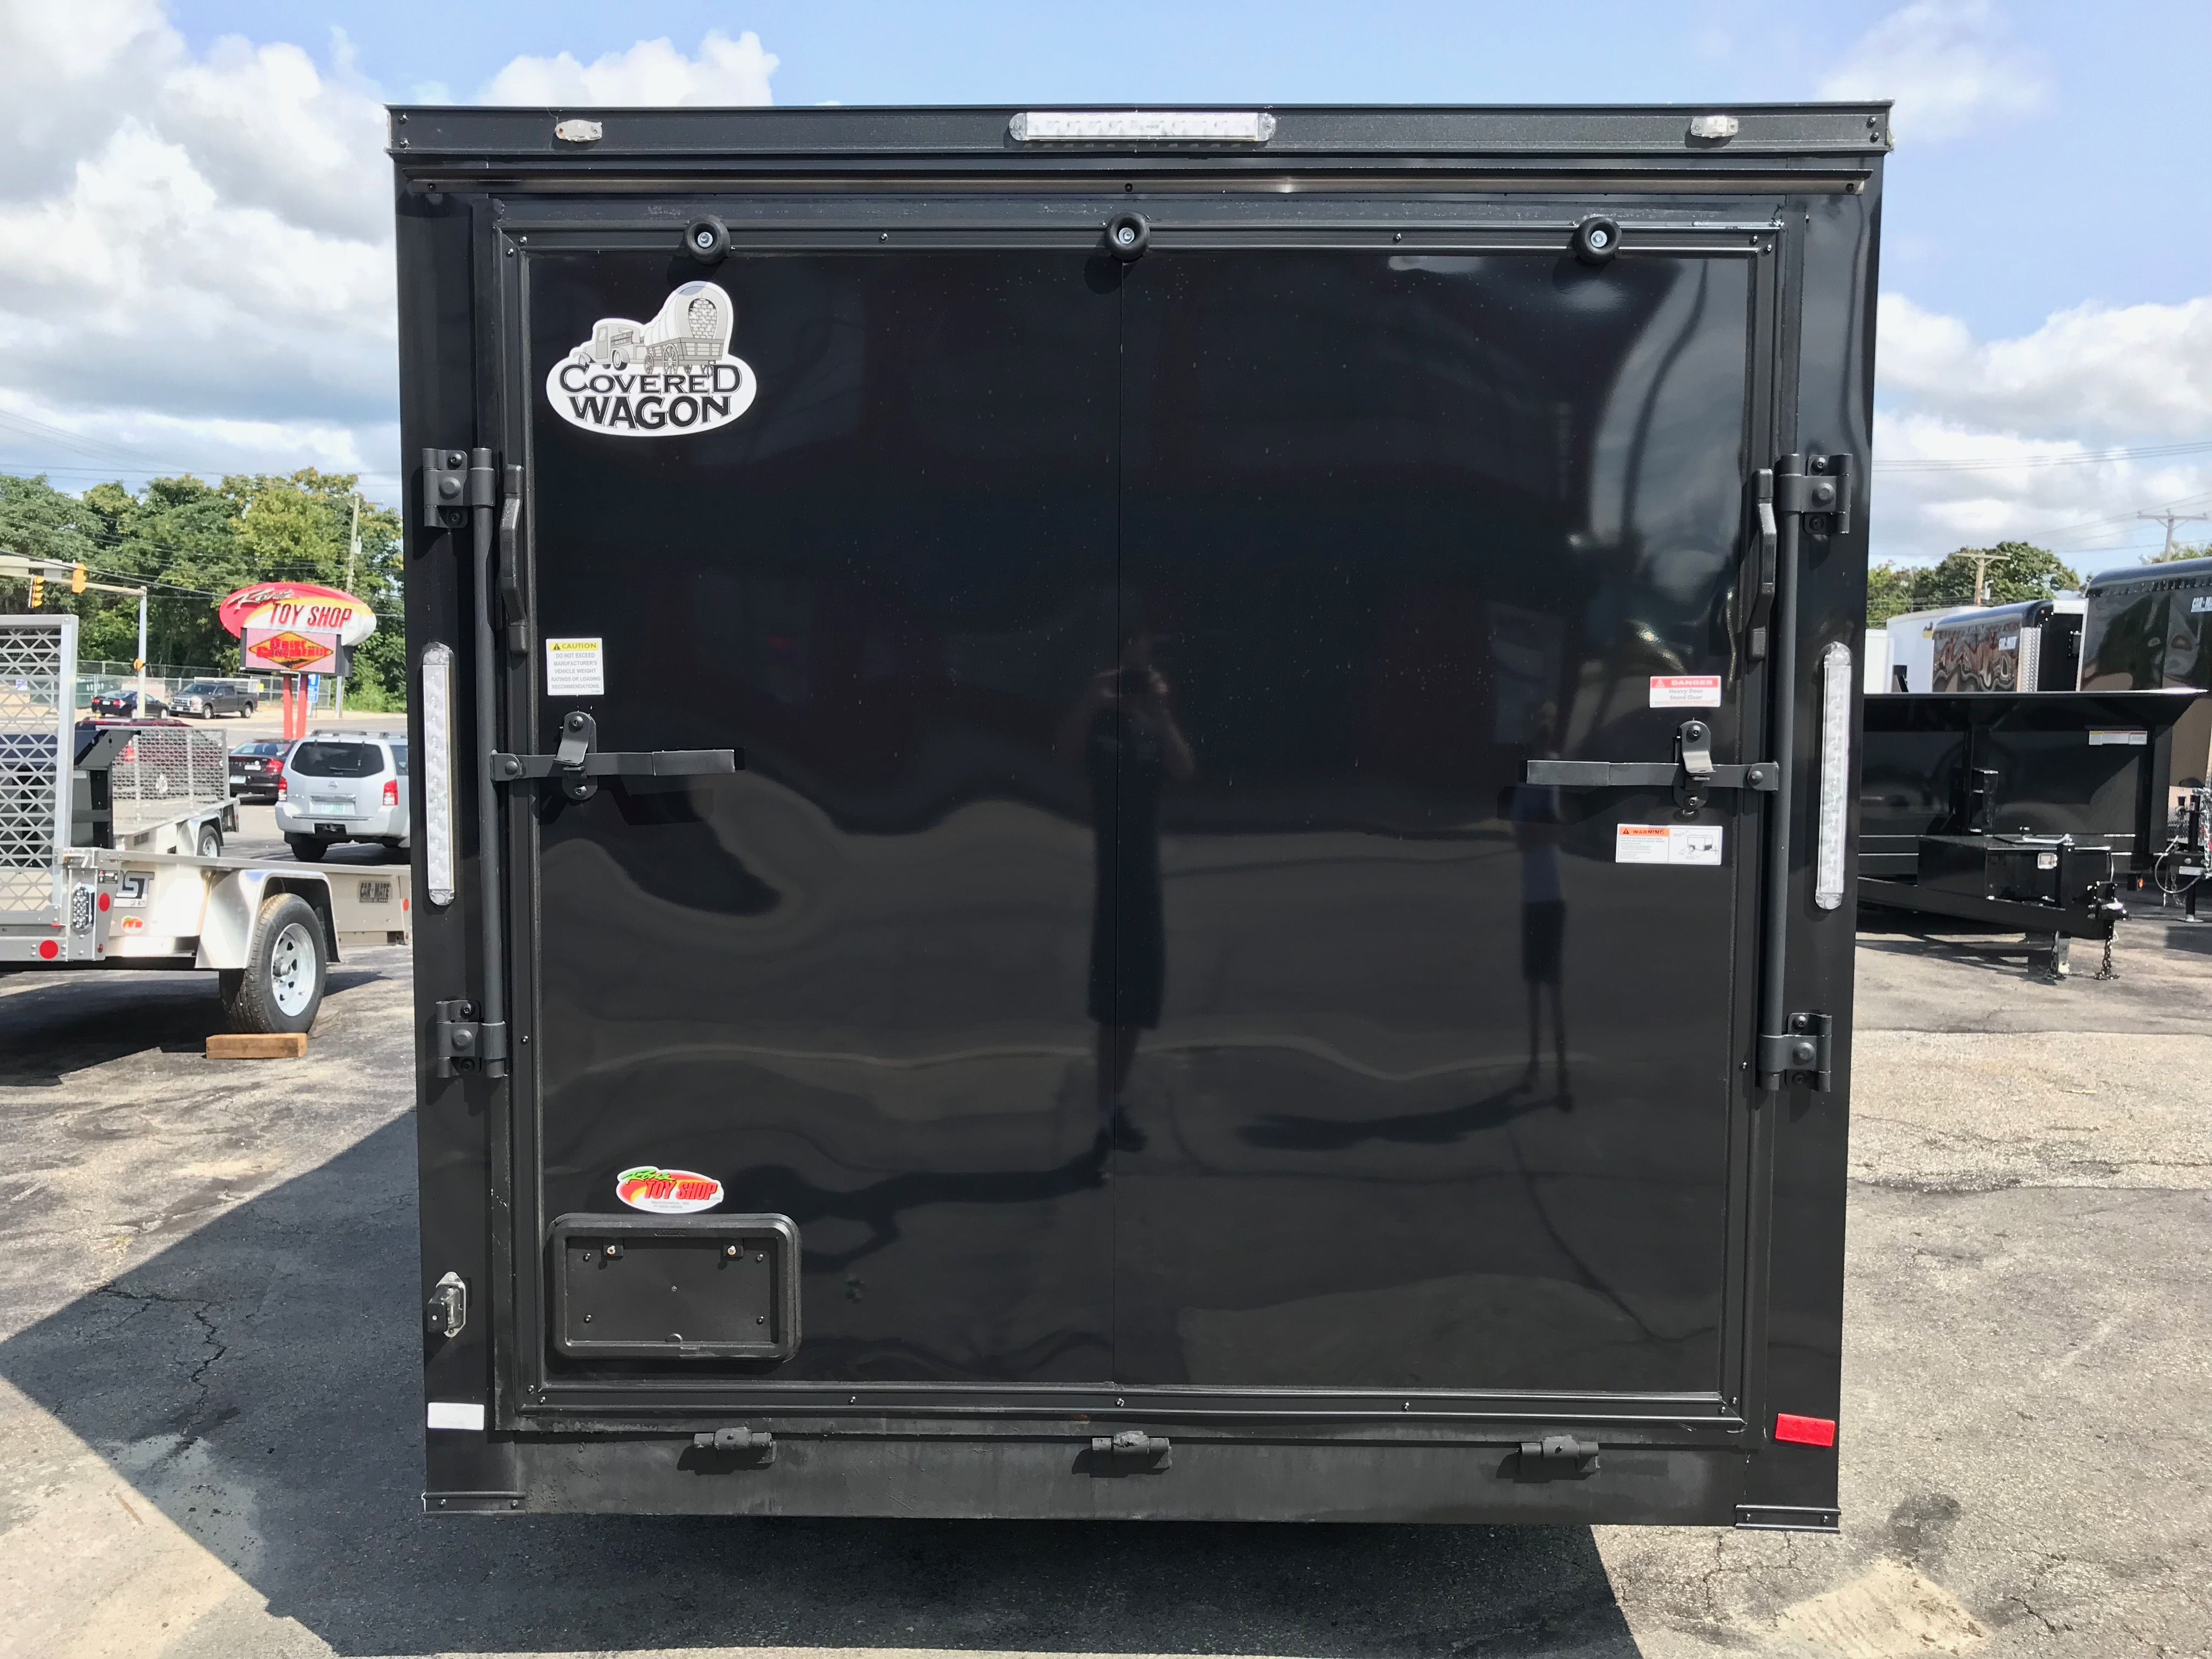 Enclosed Cargo Trailer 7 X16 2 V Black Out Covered Wagon Ron S